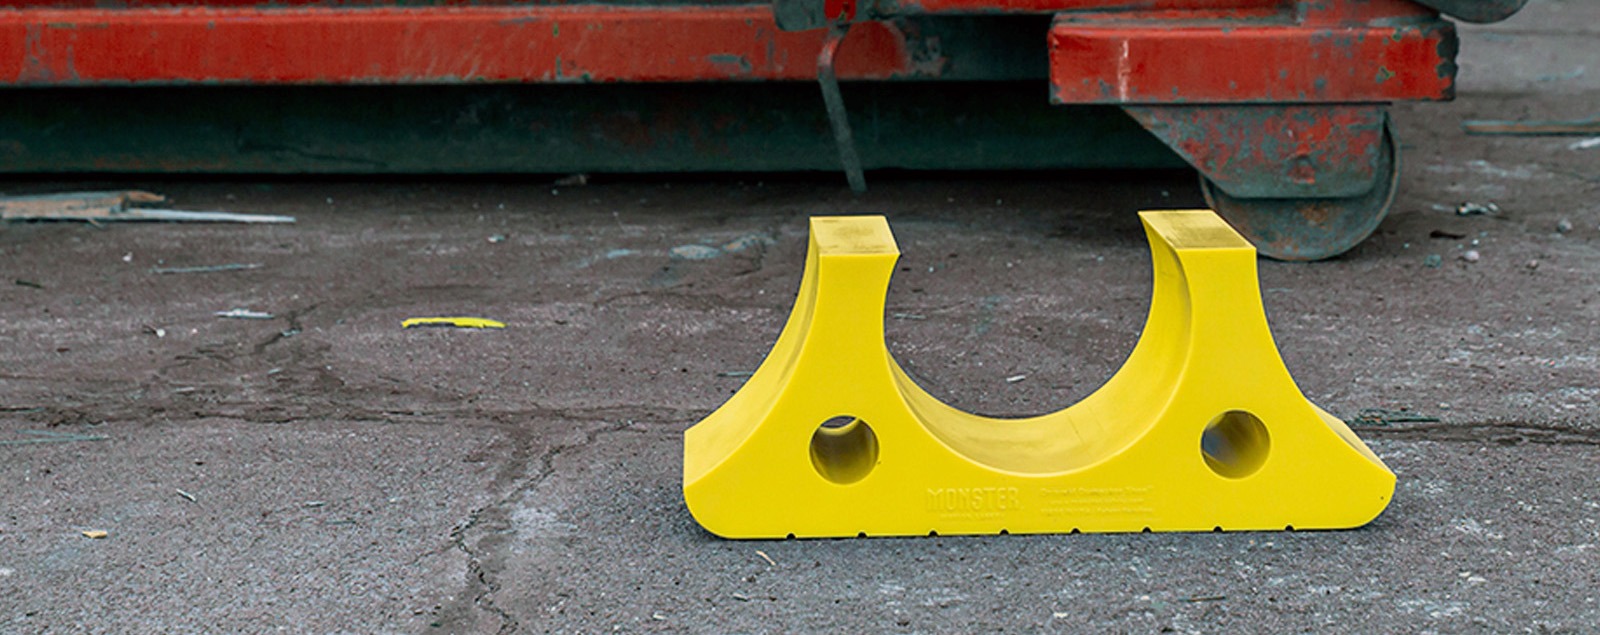 Ground Protector for Dumpsters